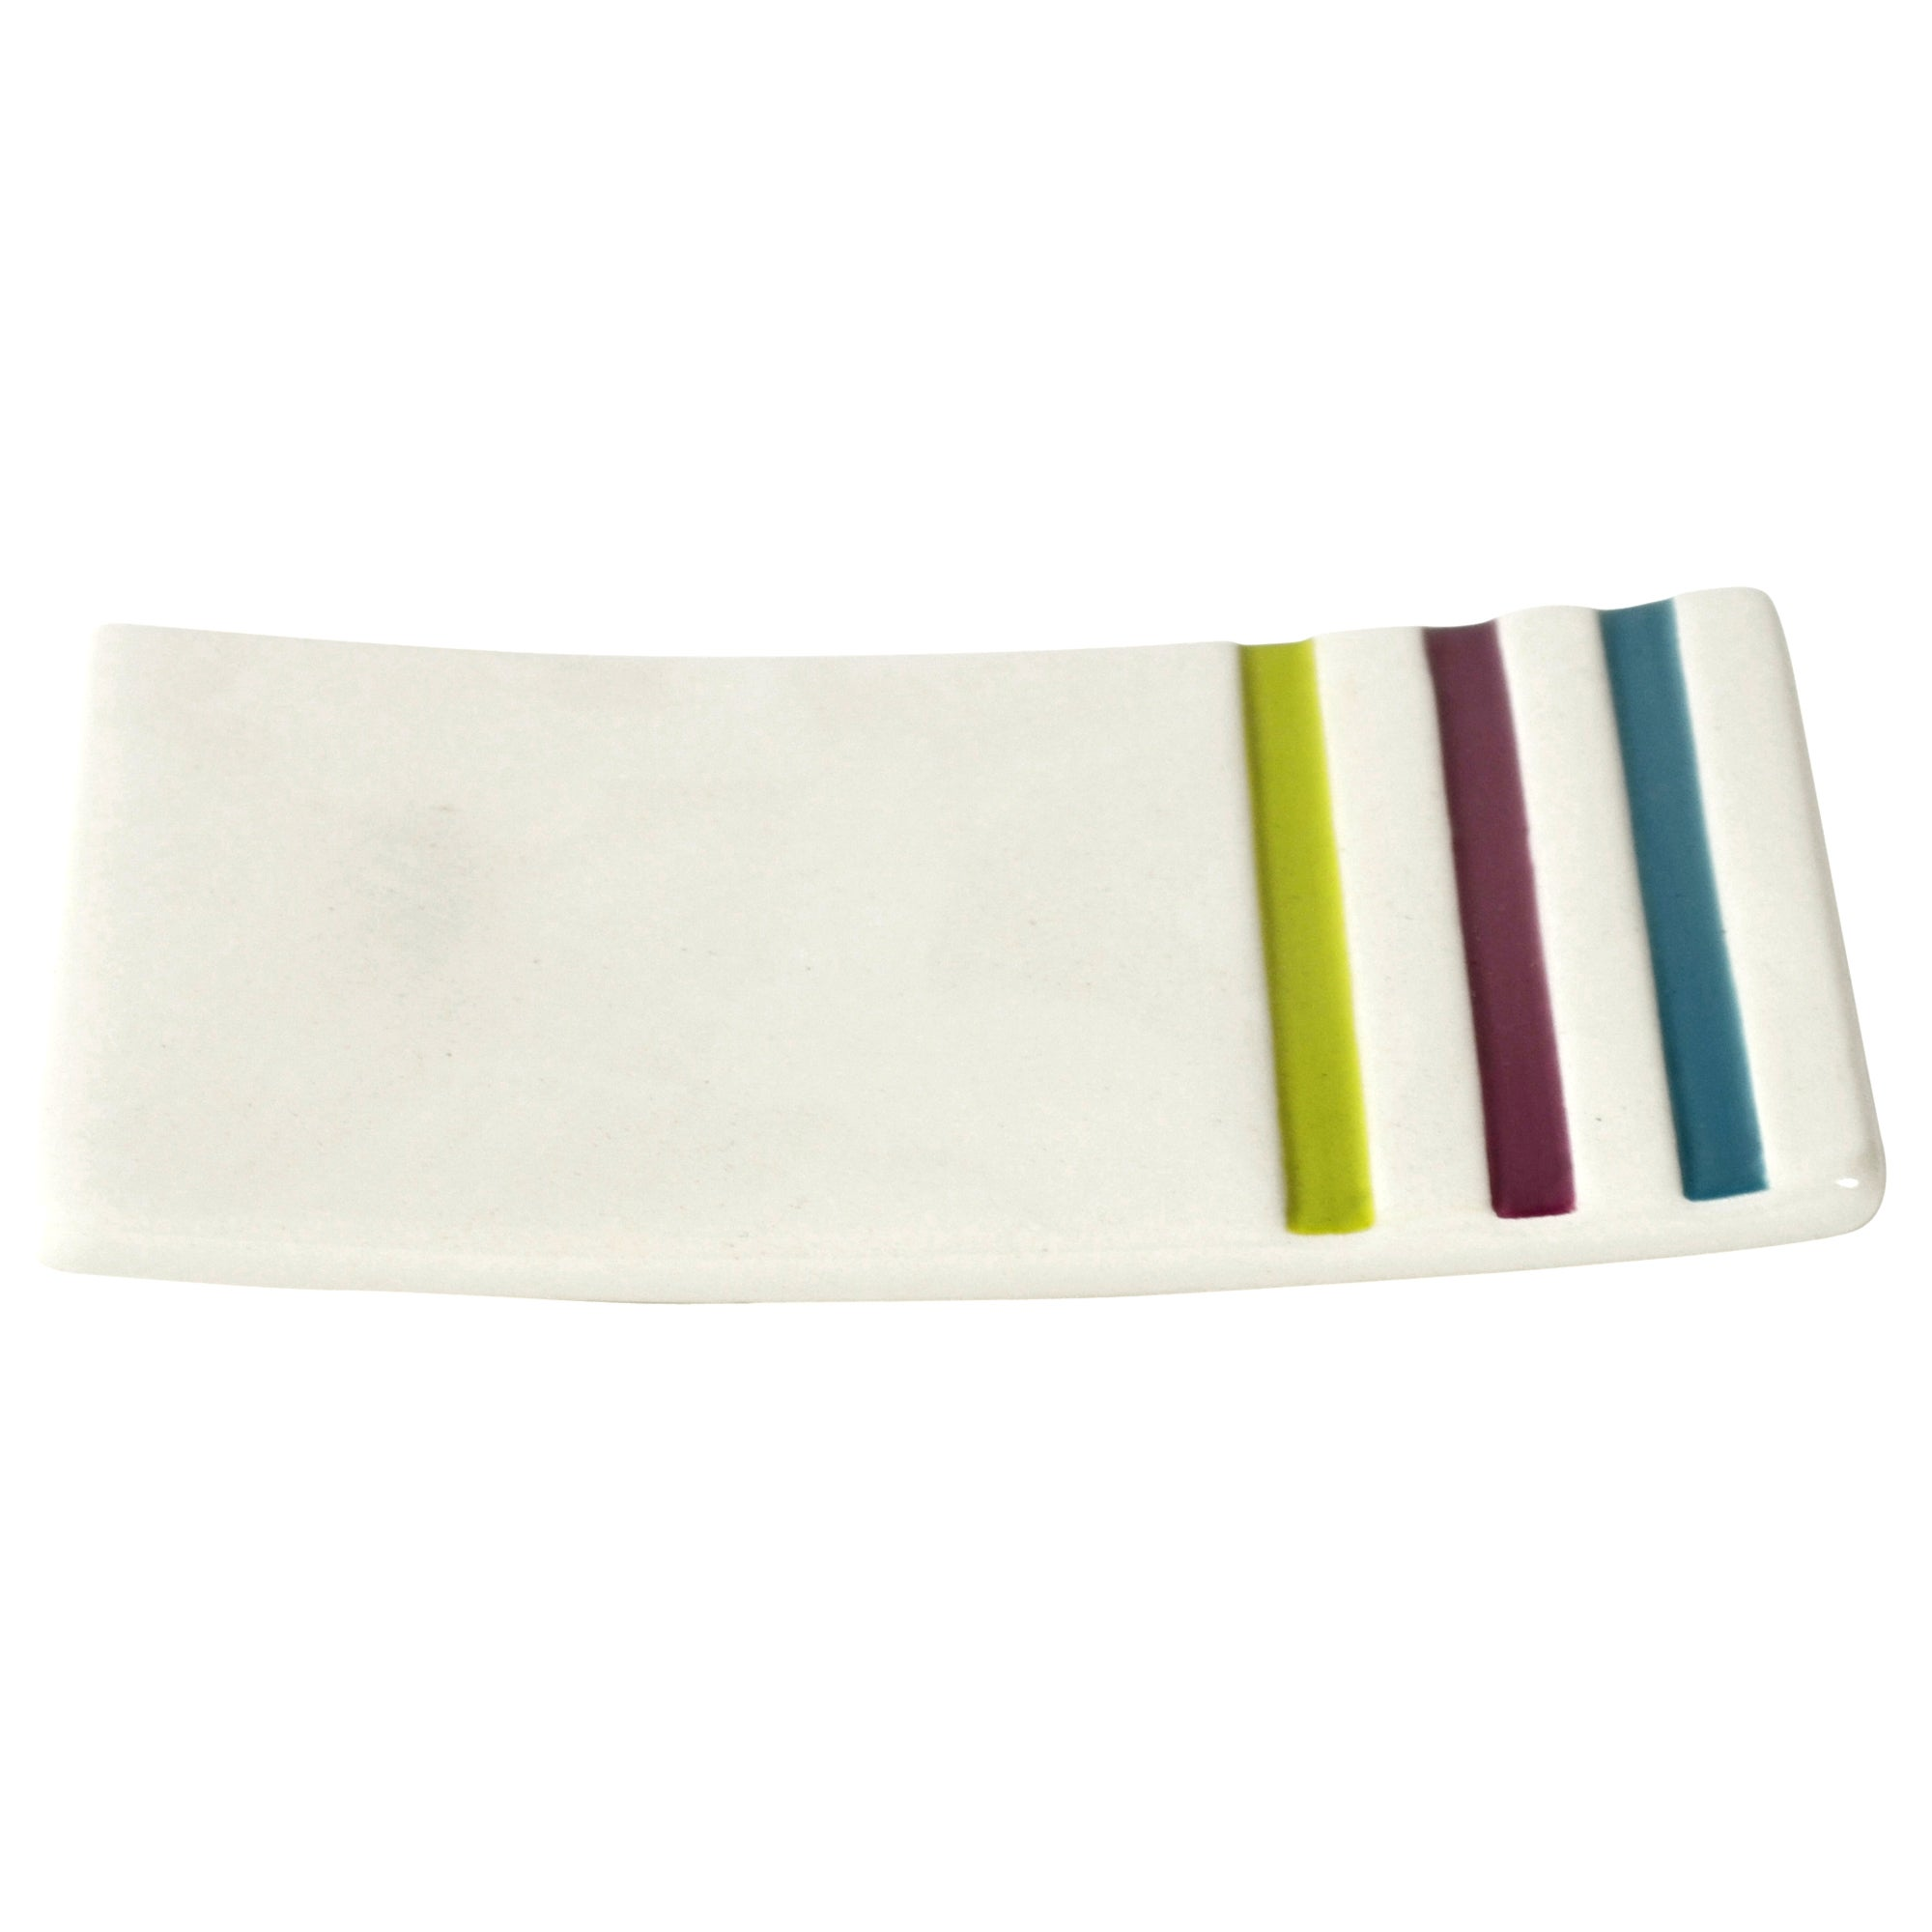 Haven Brights Collection Soap Dish